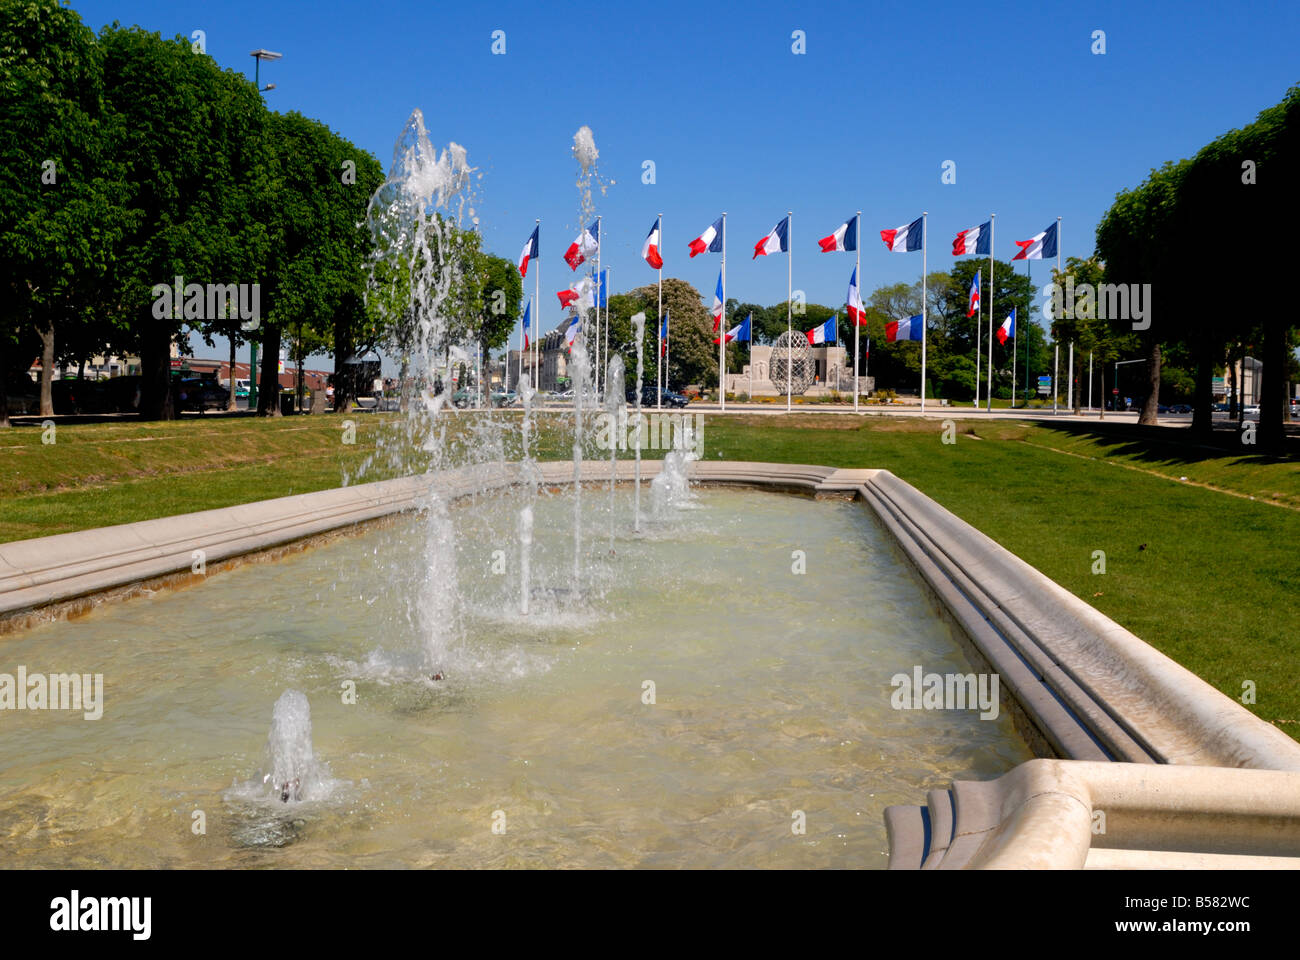 Fountains in Hautes Promenades park, looking towards Place de la Republique, Reims, Marne, Champagne-Ardenne, France, - Stock Image